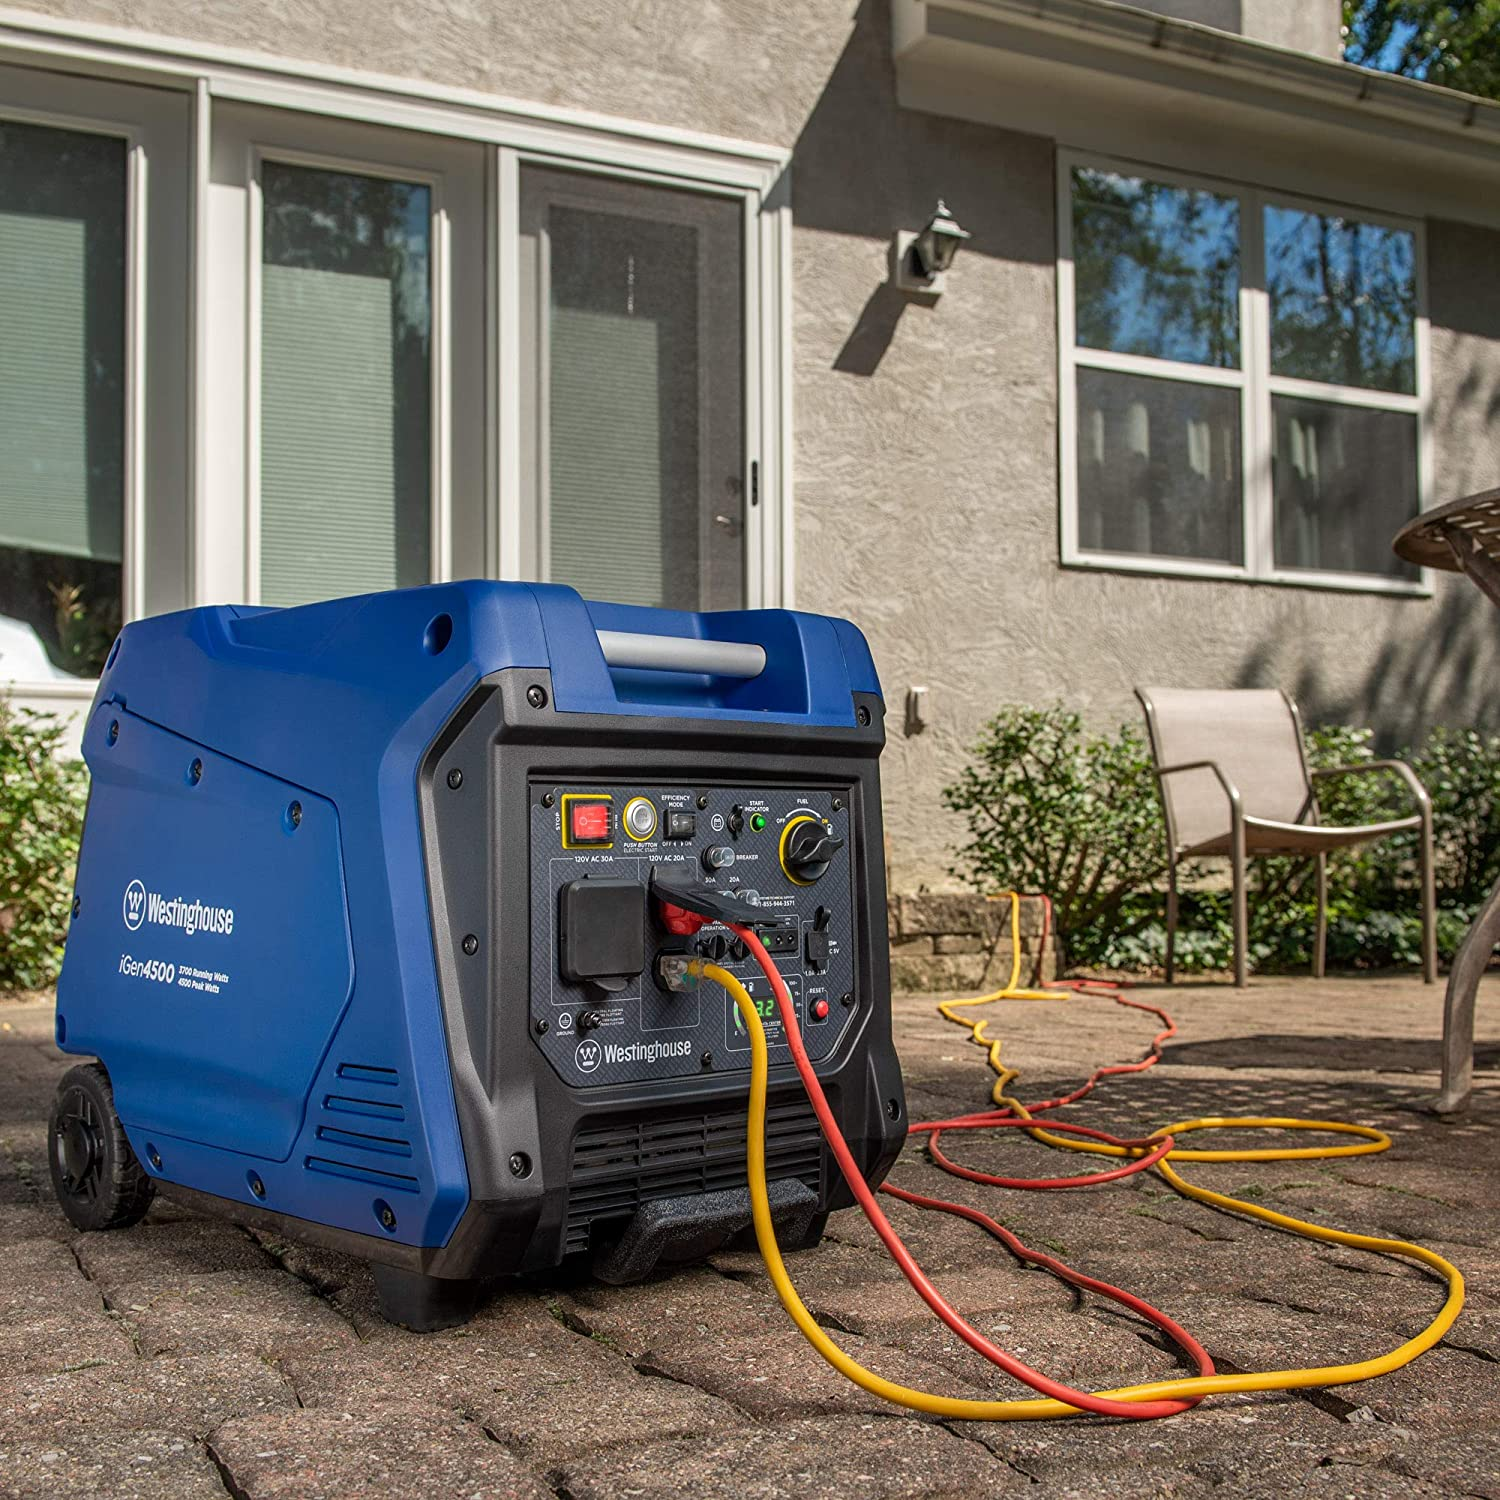 Buying Guide for RV generators